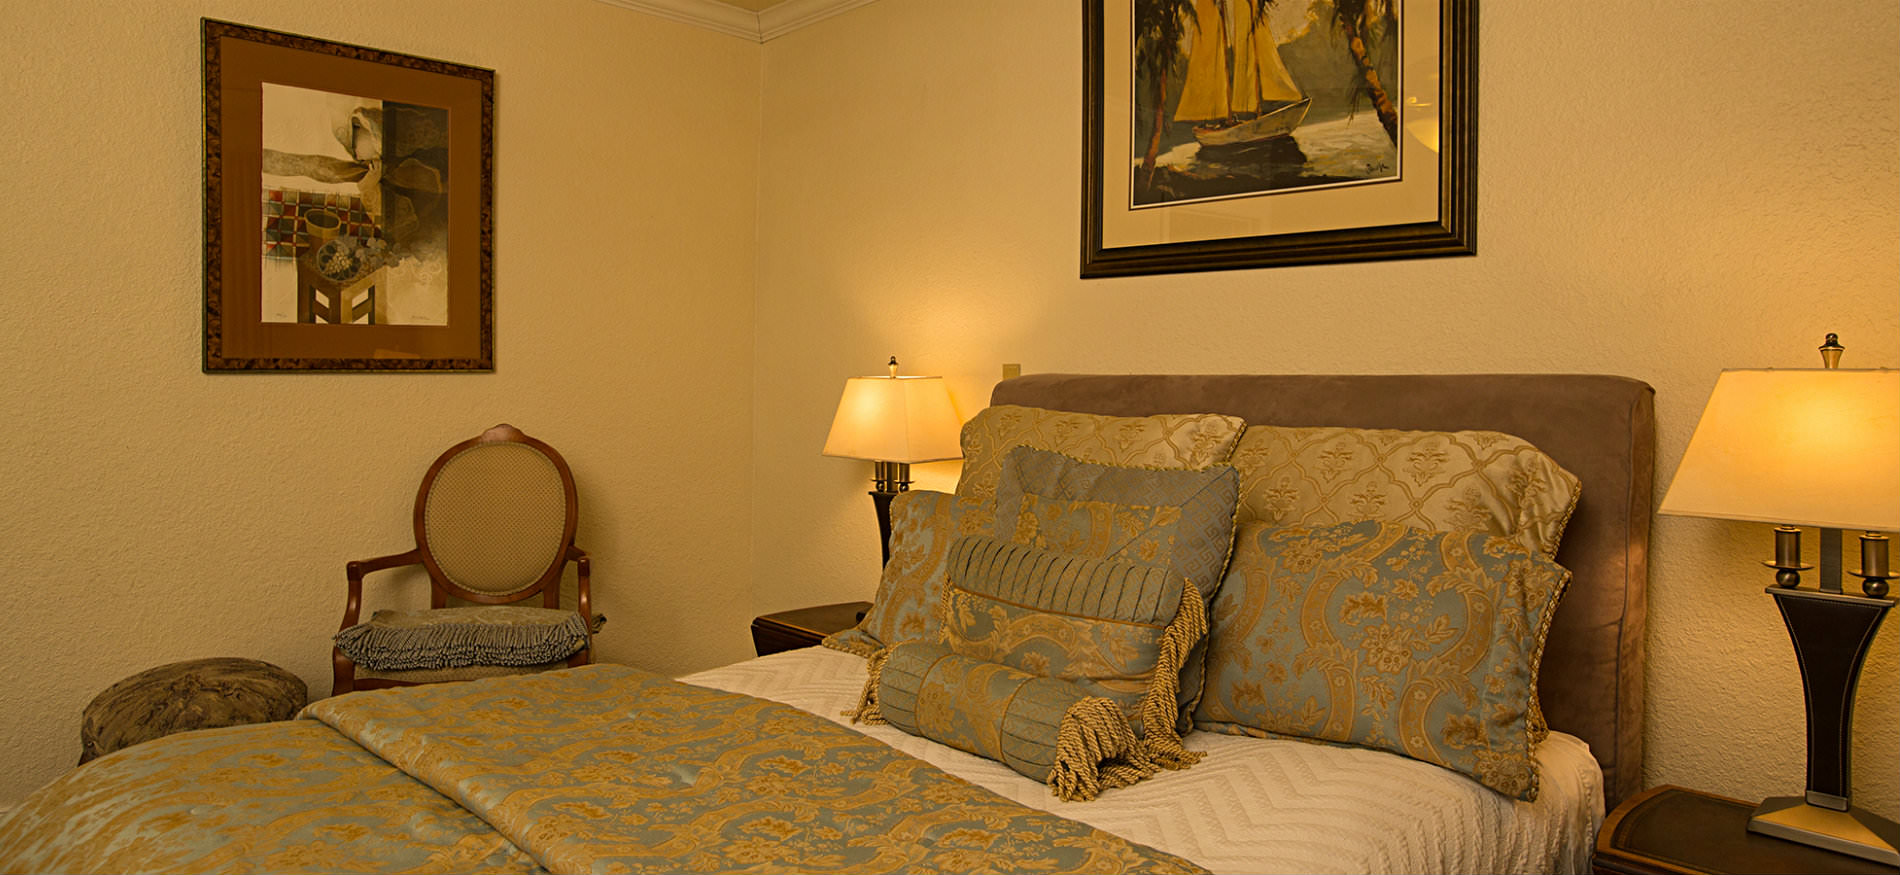 Bedroom with upholstered headboard, gold and light blue comforter, textured ivory walls, and two nightstands with lamps